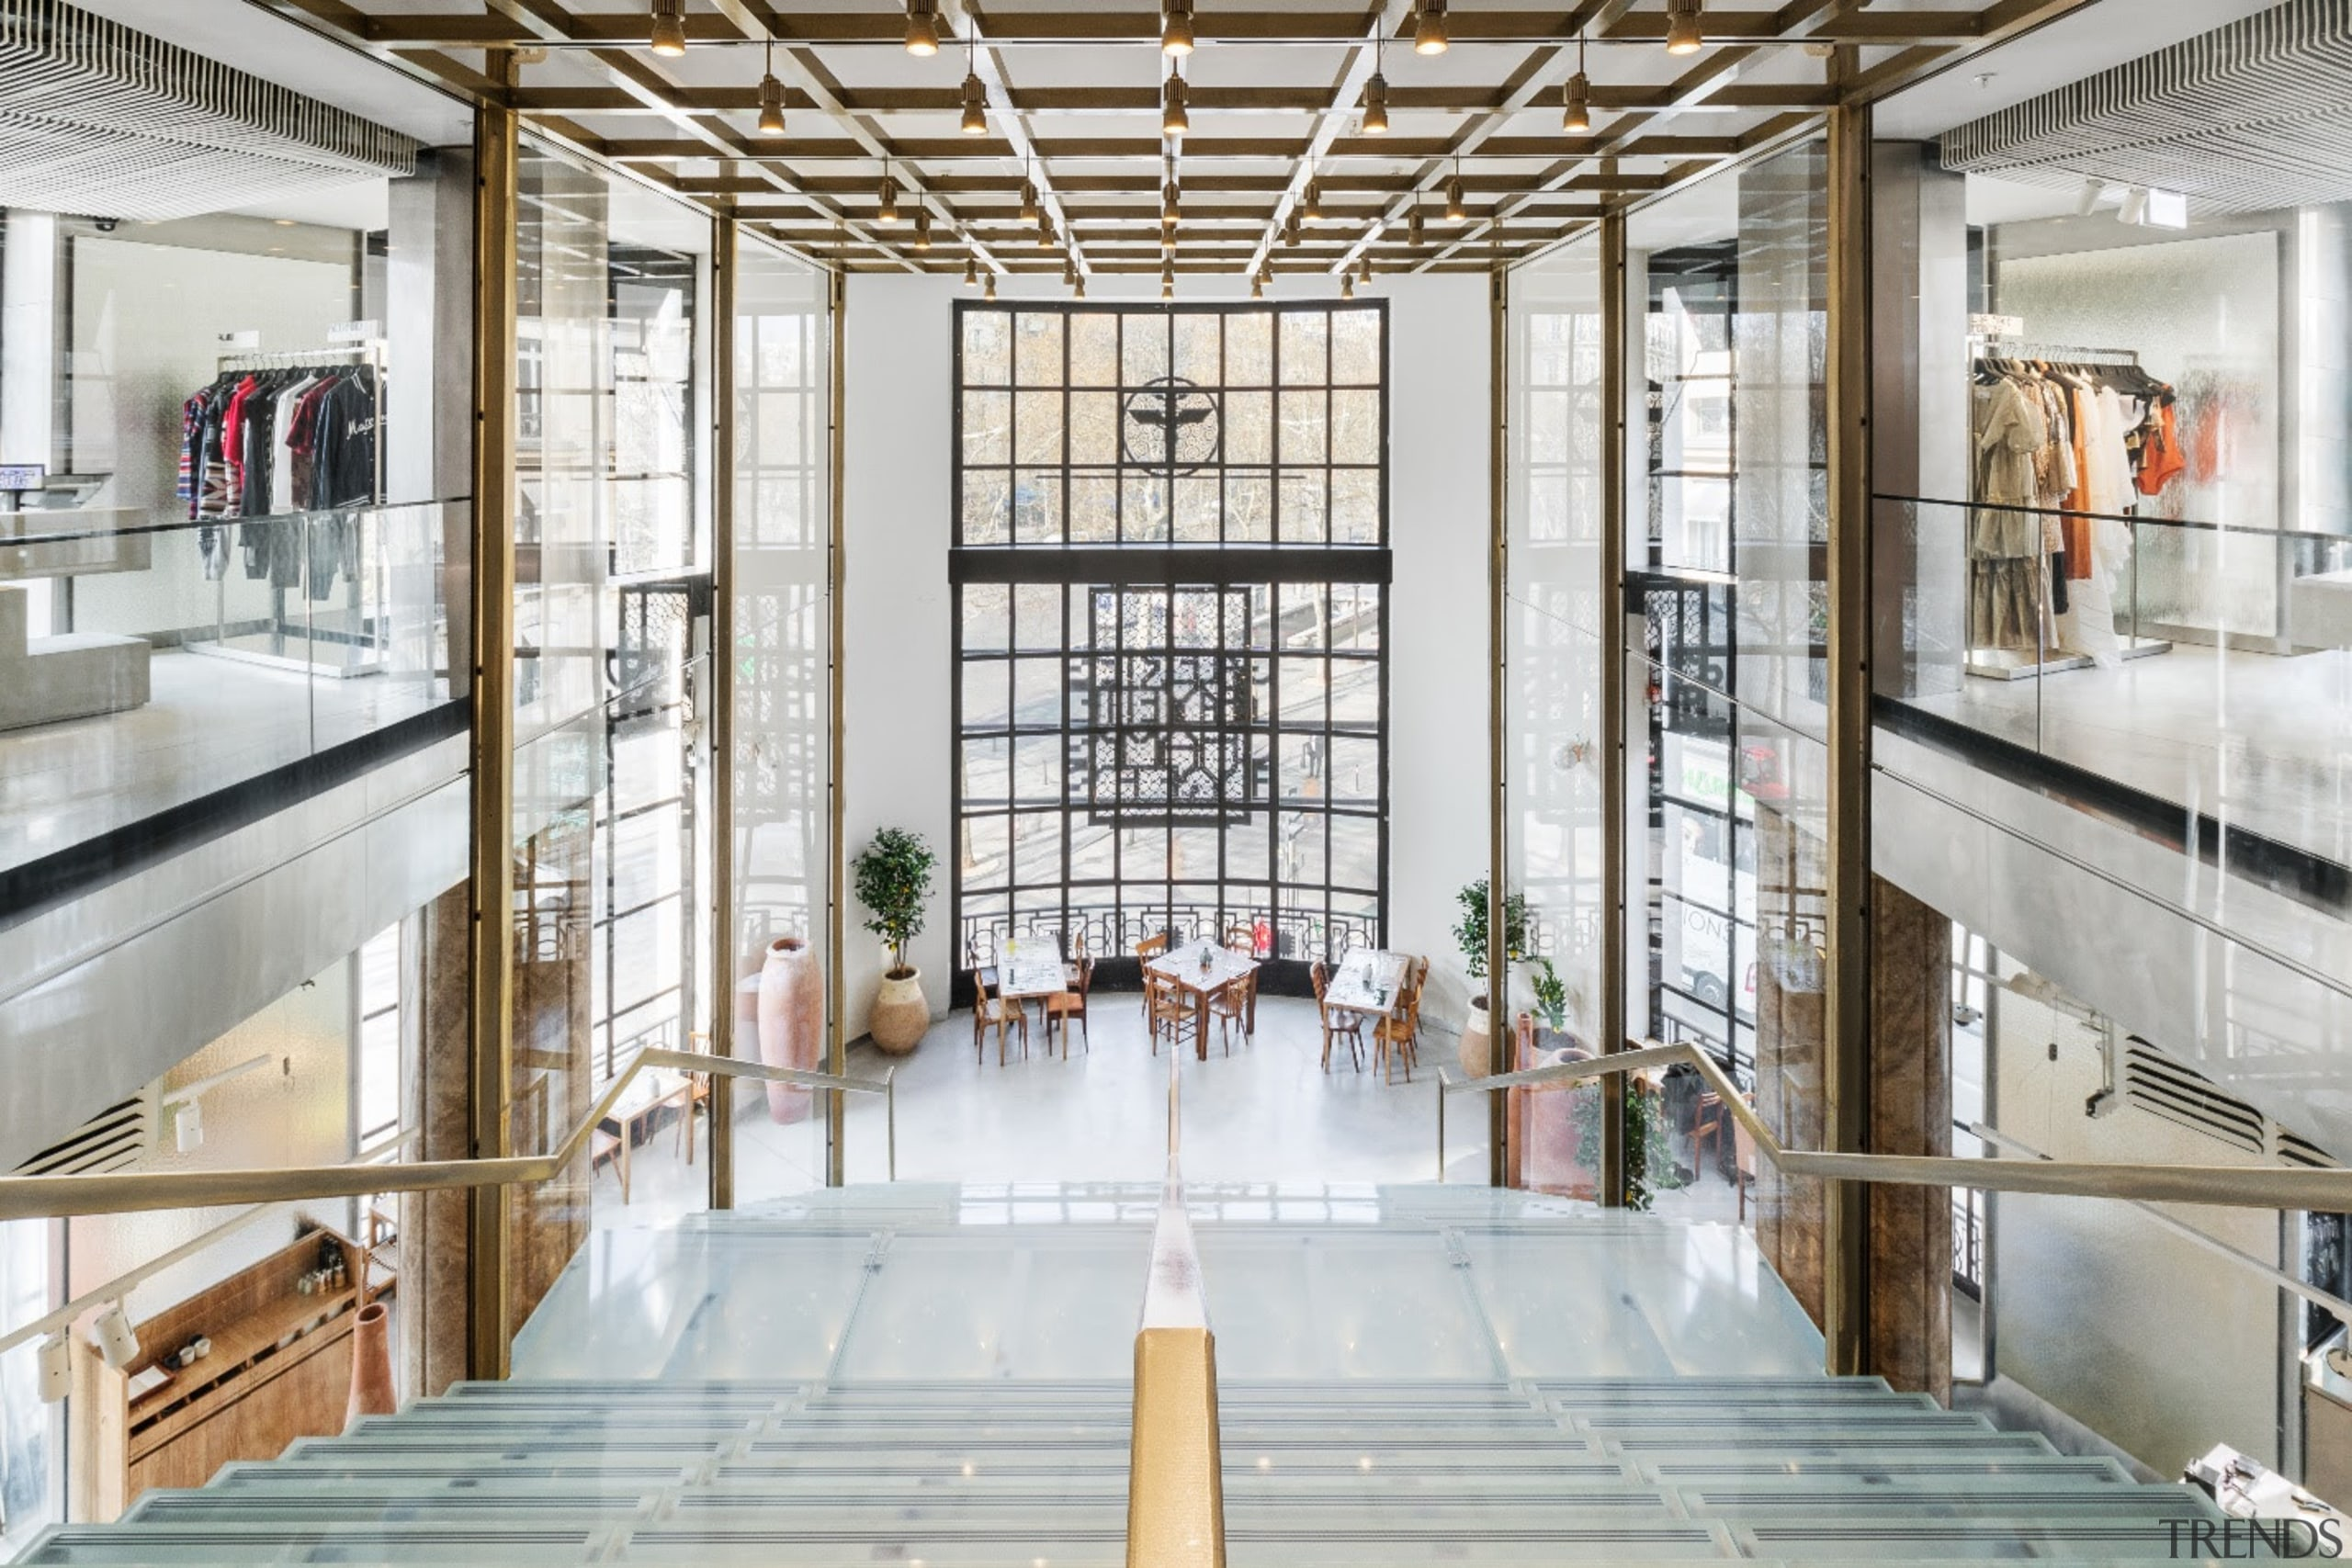 The historical architecture is supplemented by the raw architecture, building, ceiling, daylighting, glass, interior design, lobby, window, white, gray